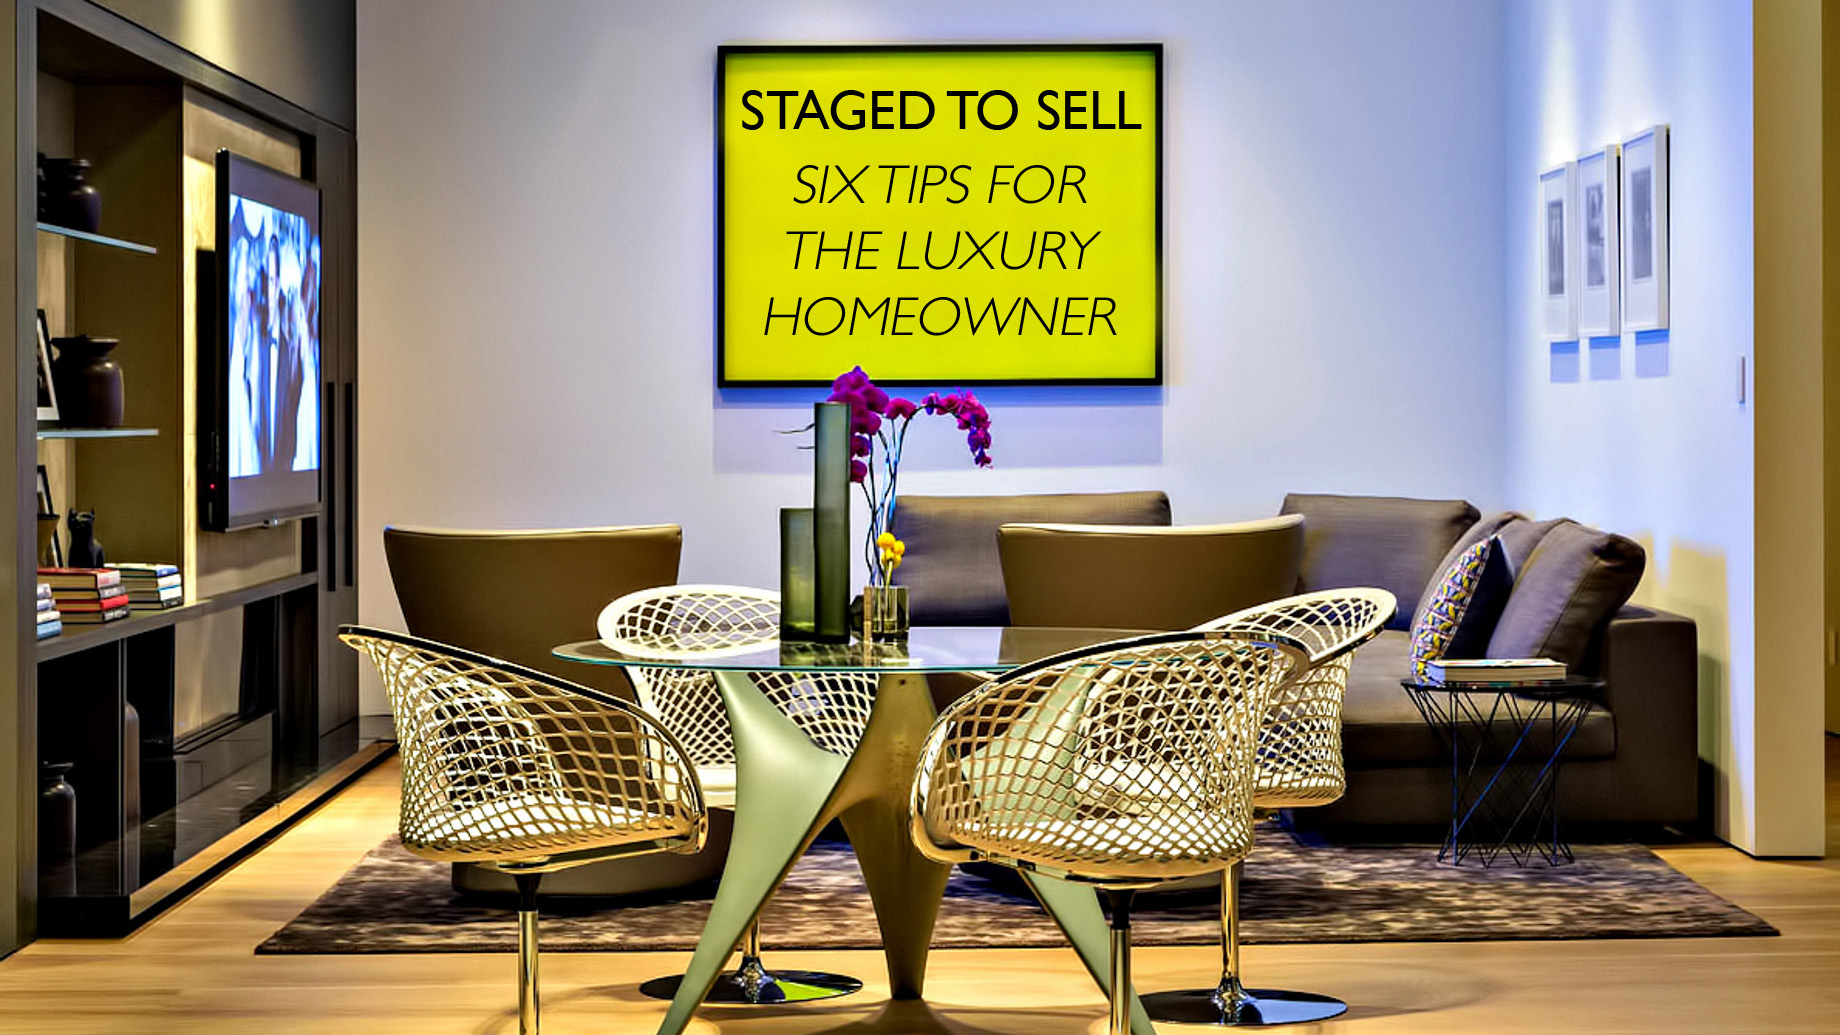 Staged to Sell - Six Tips for the Luxury Homeowner